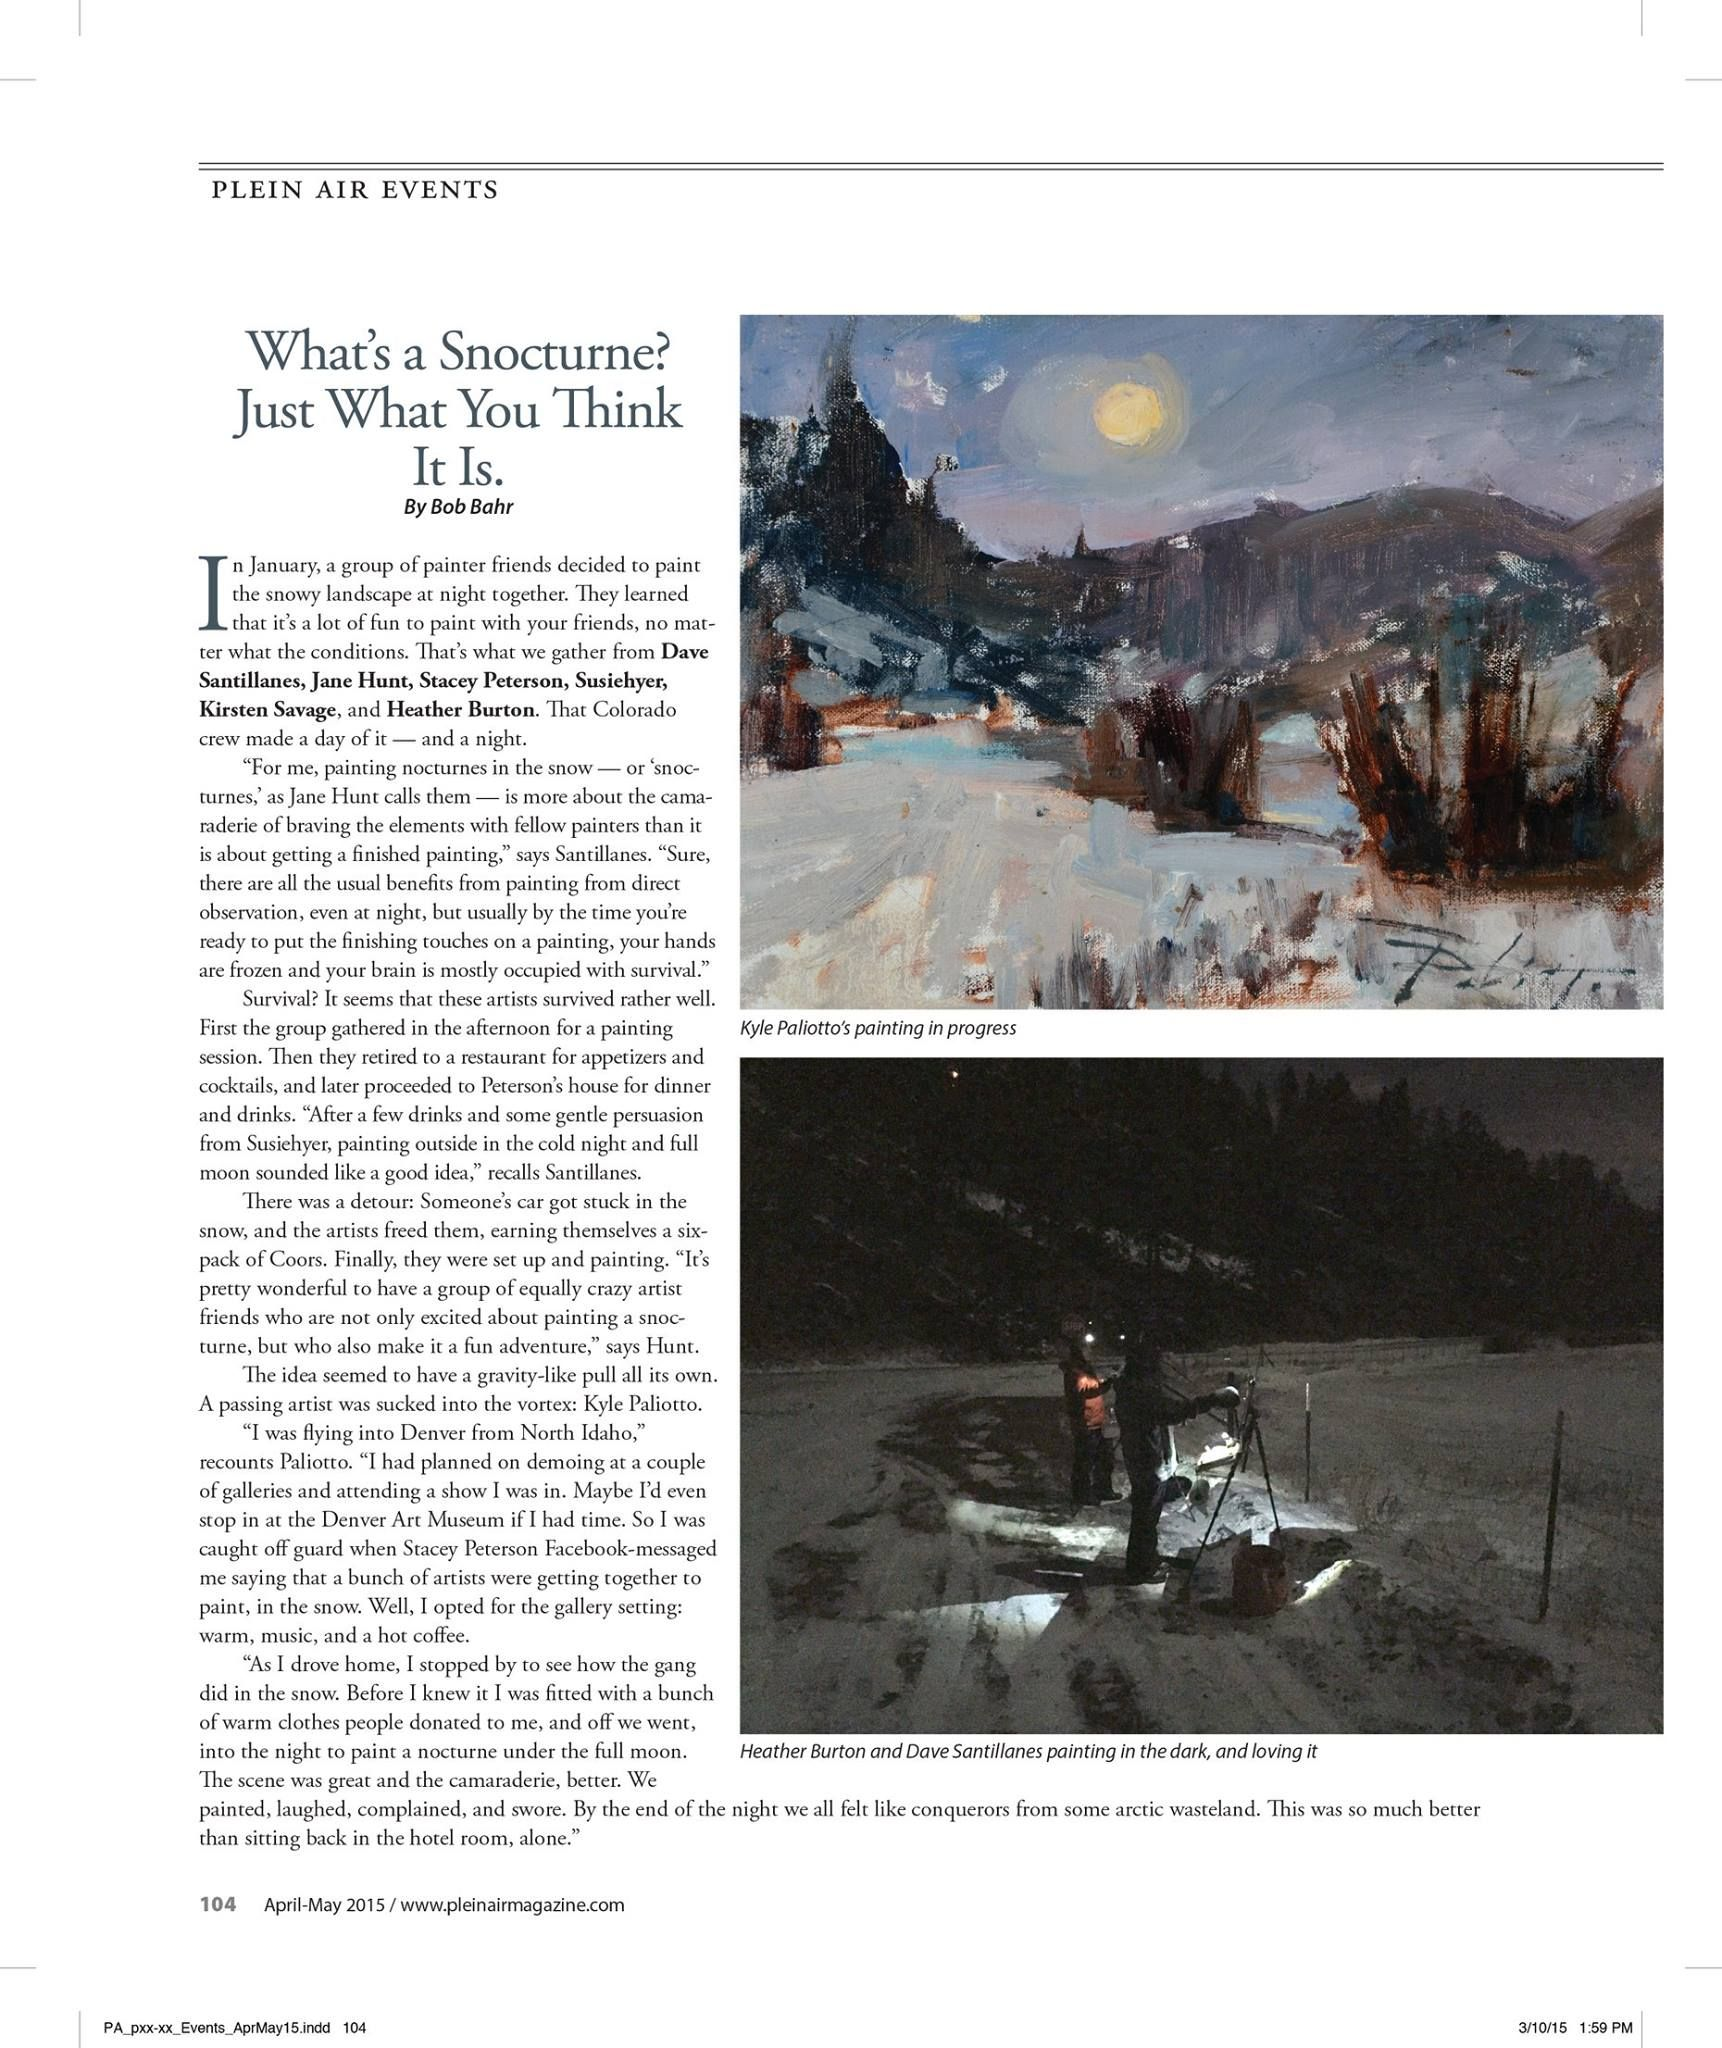 this article appears in the May issue of Plein Air